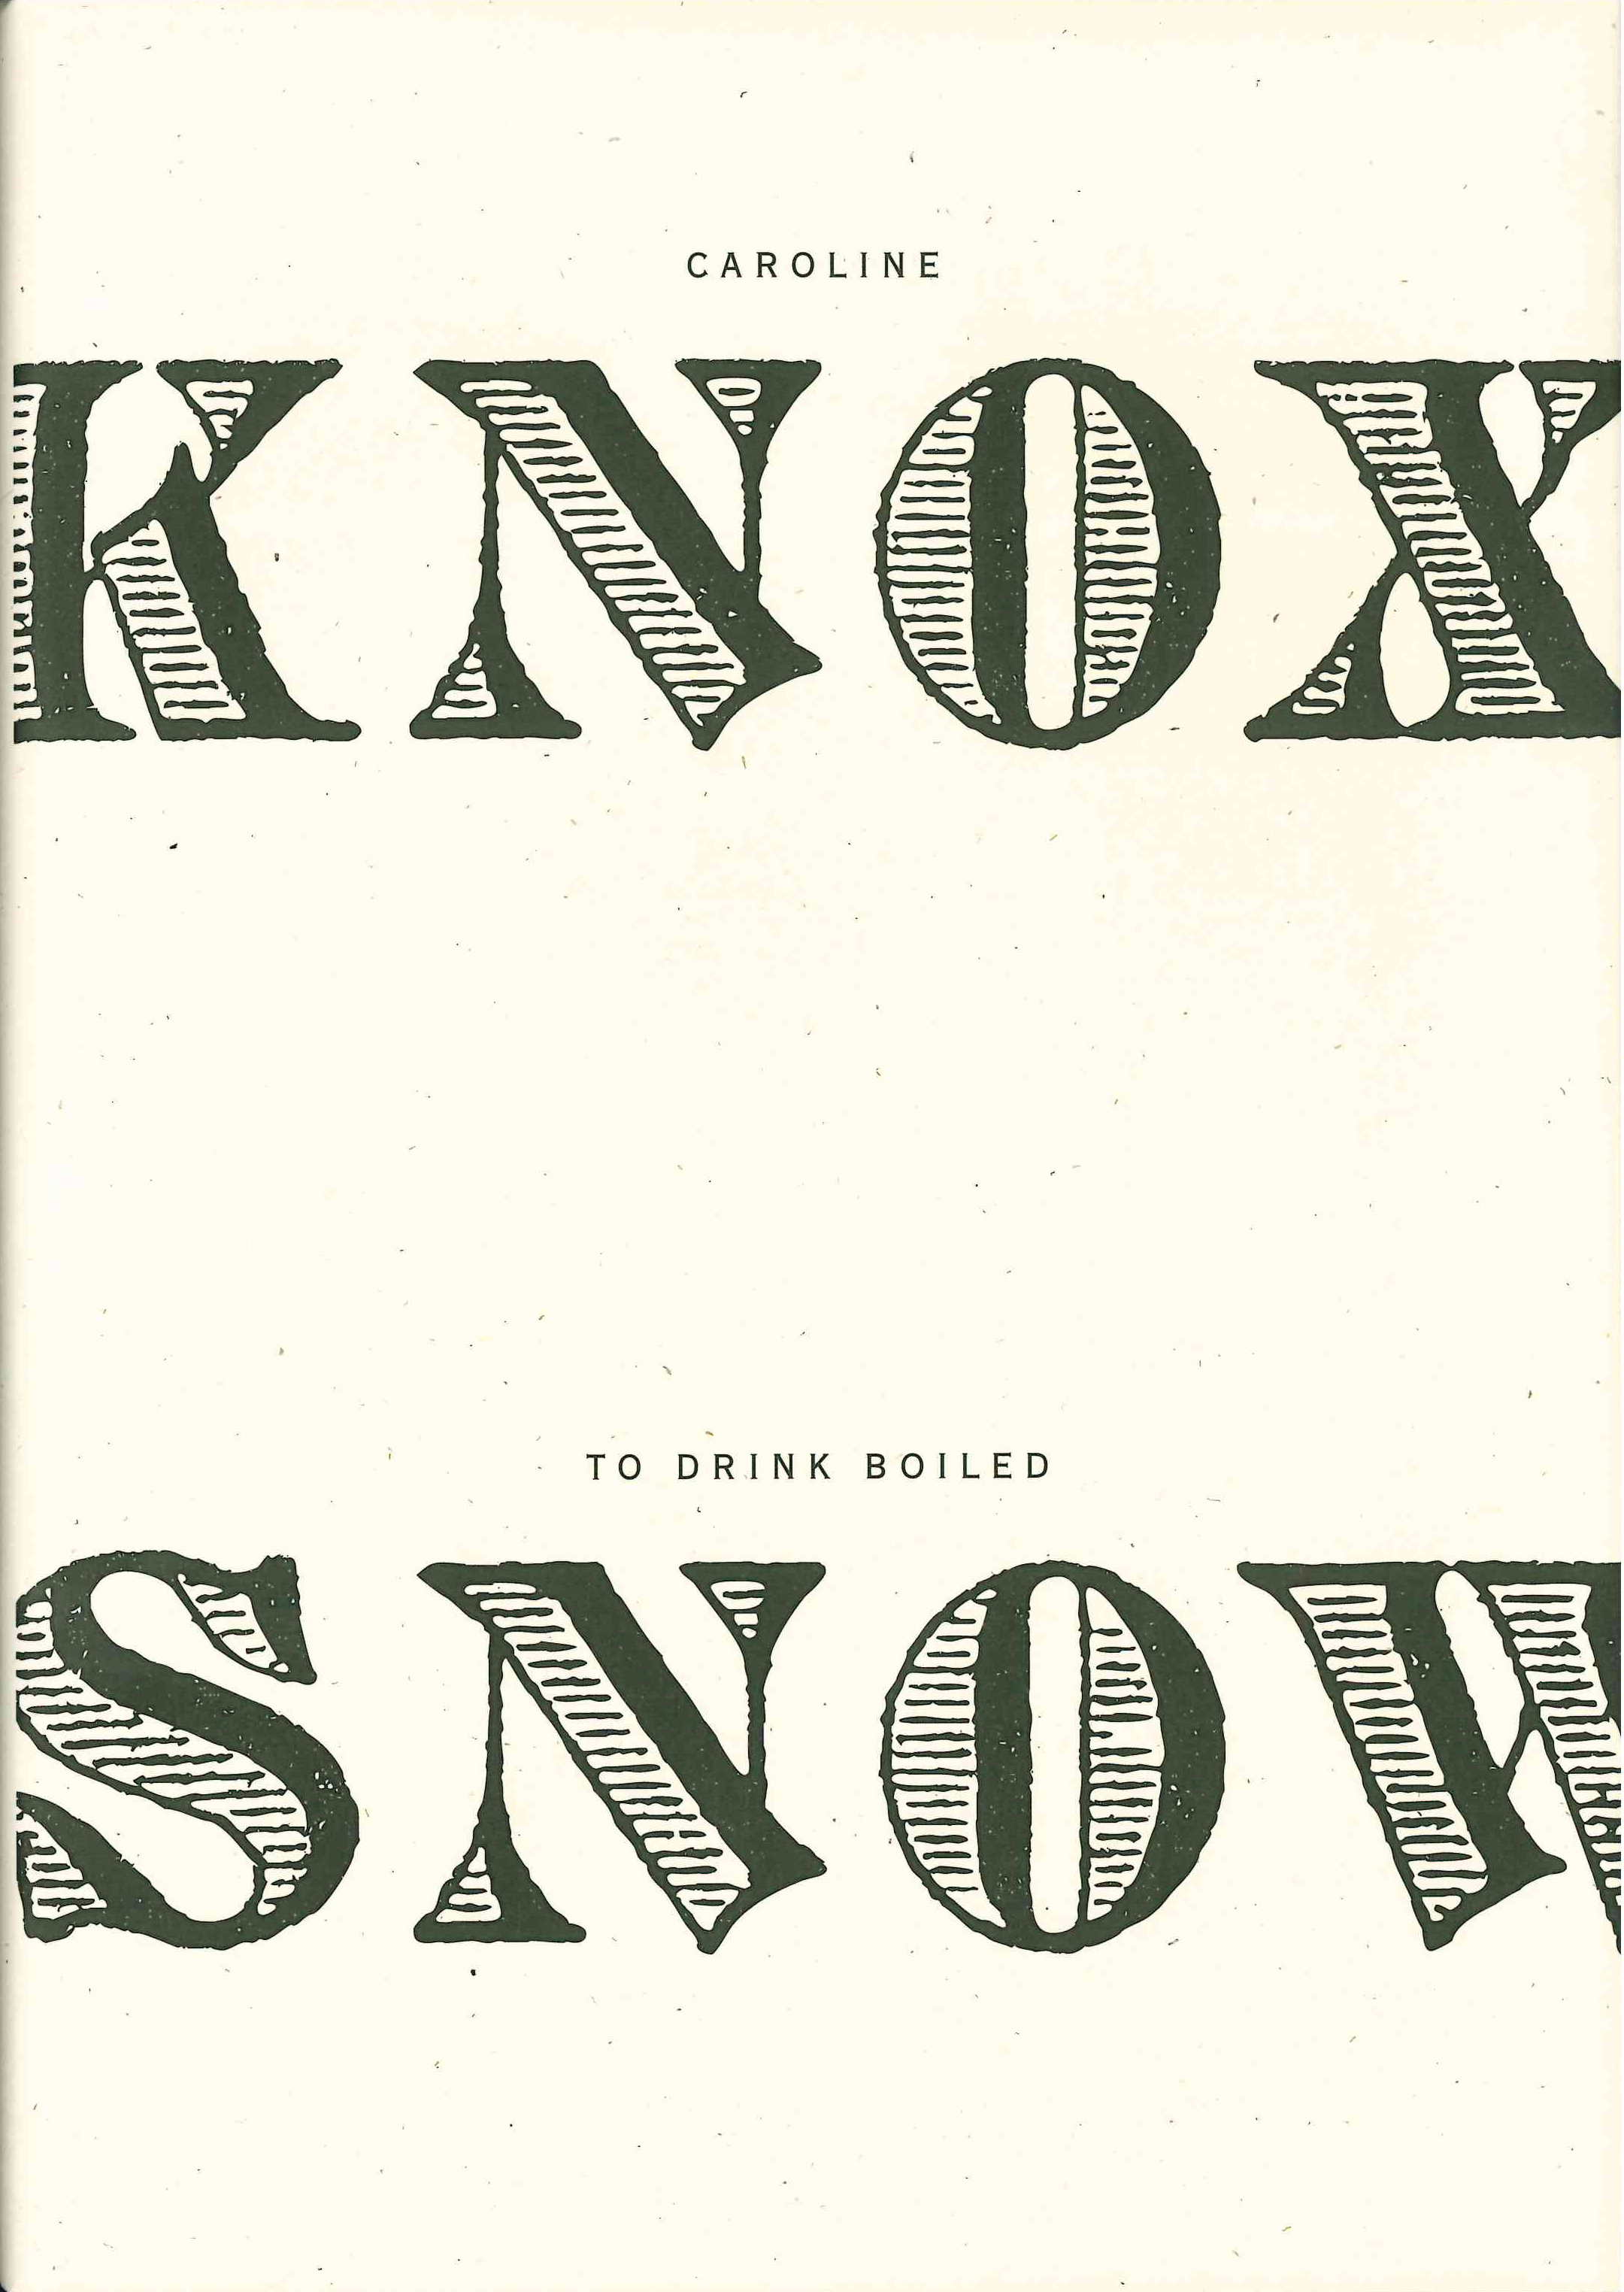 To Drink Boiled Snow Caroline Knox